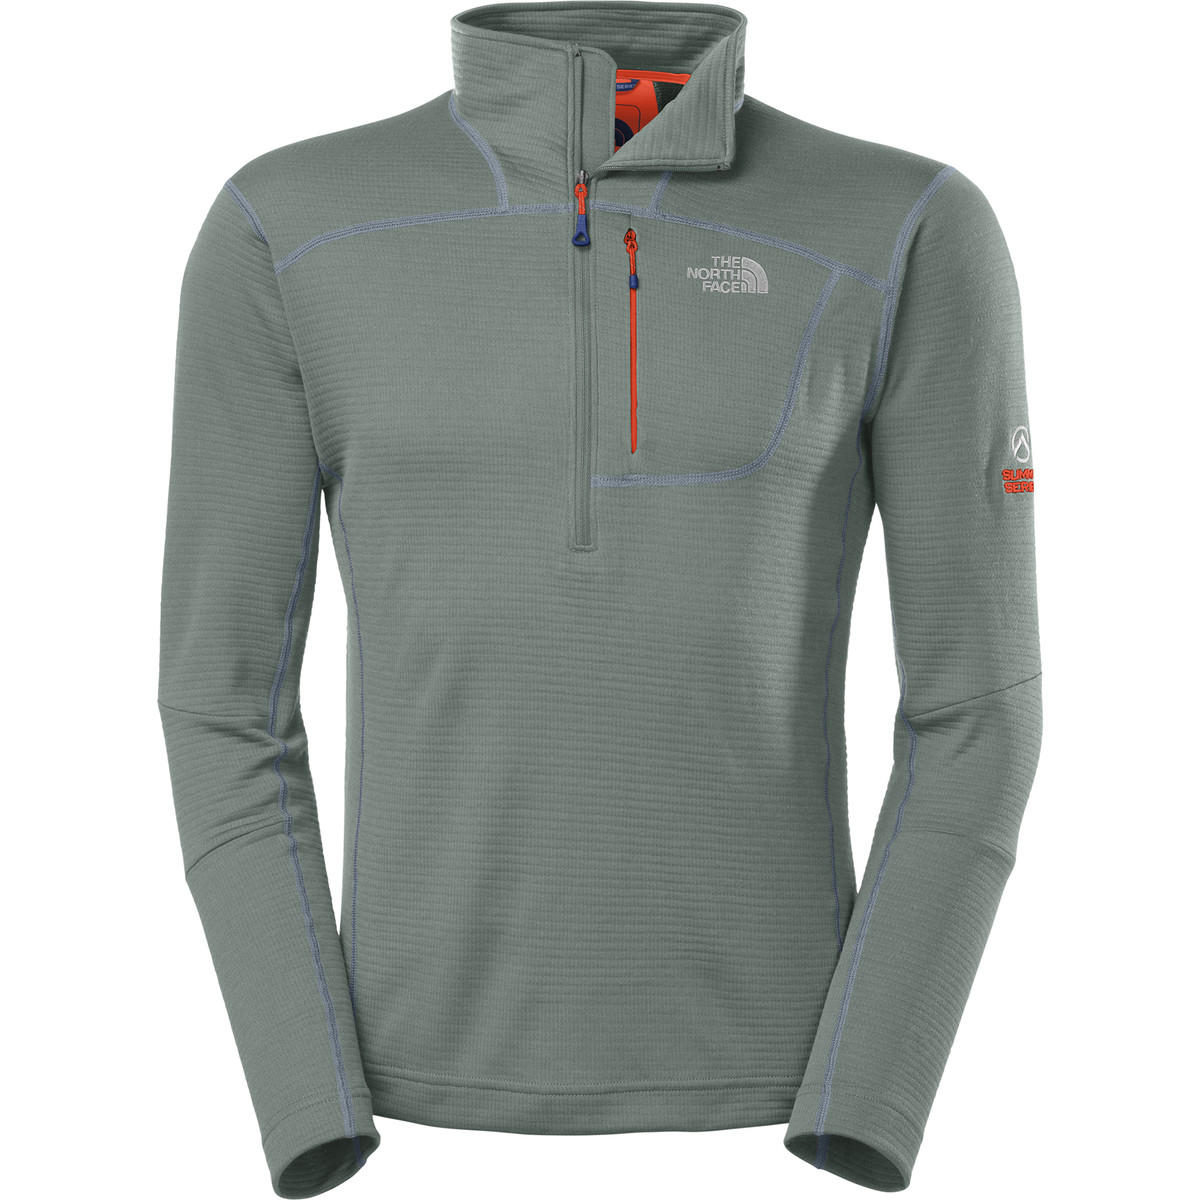 The North Face Infiesto Fleece Pullover - from Backcountry.com